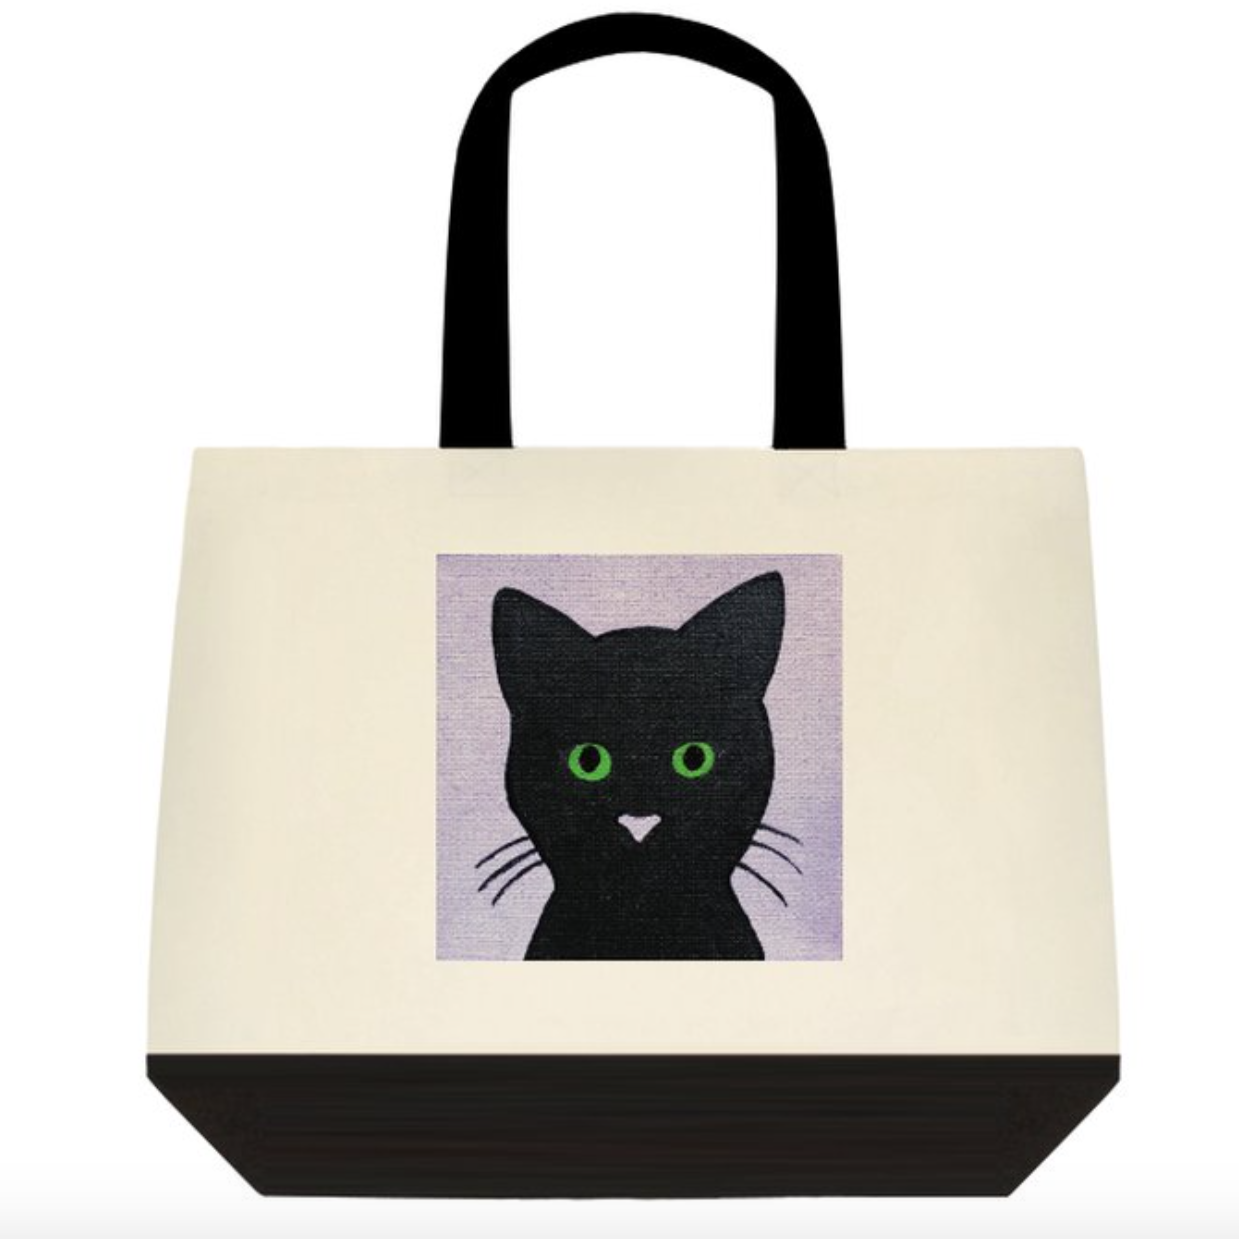 shadow tote